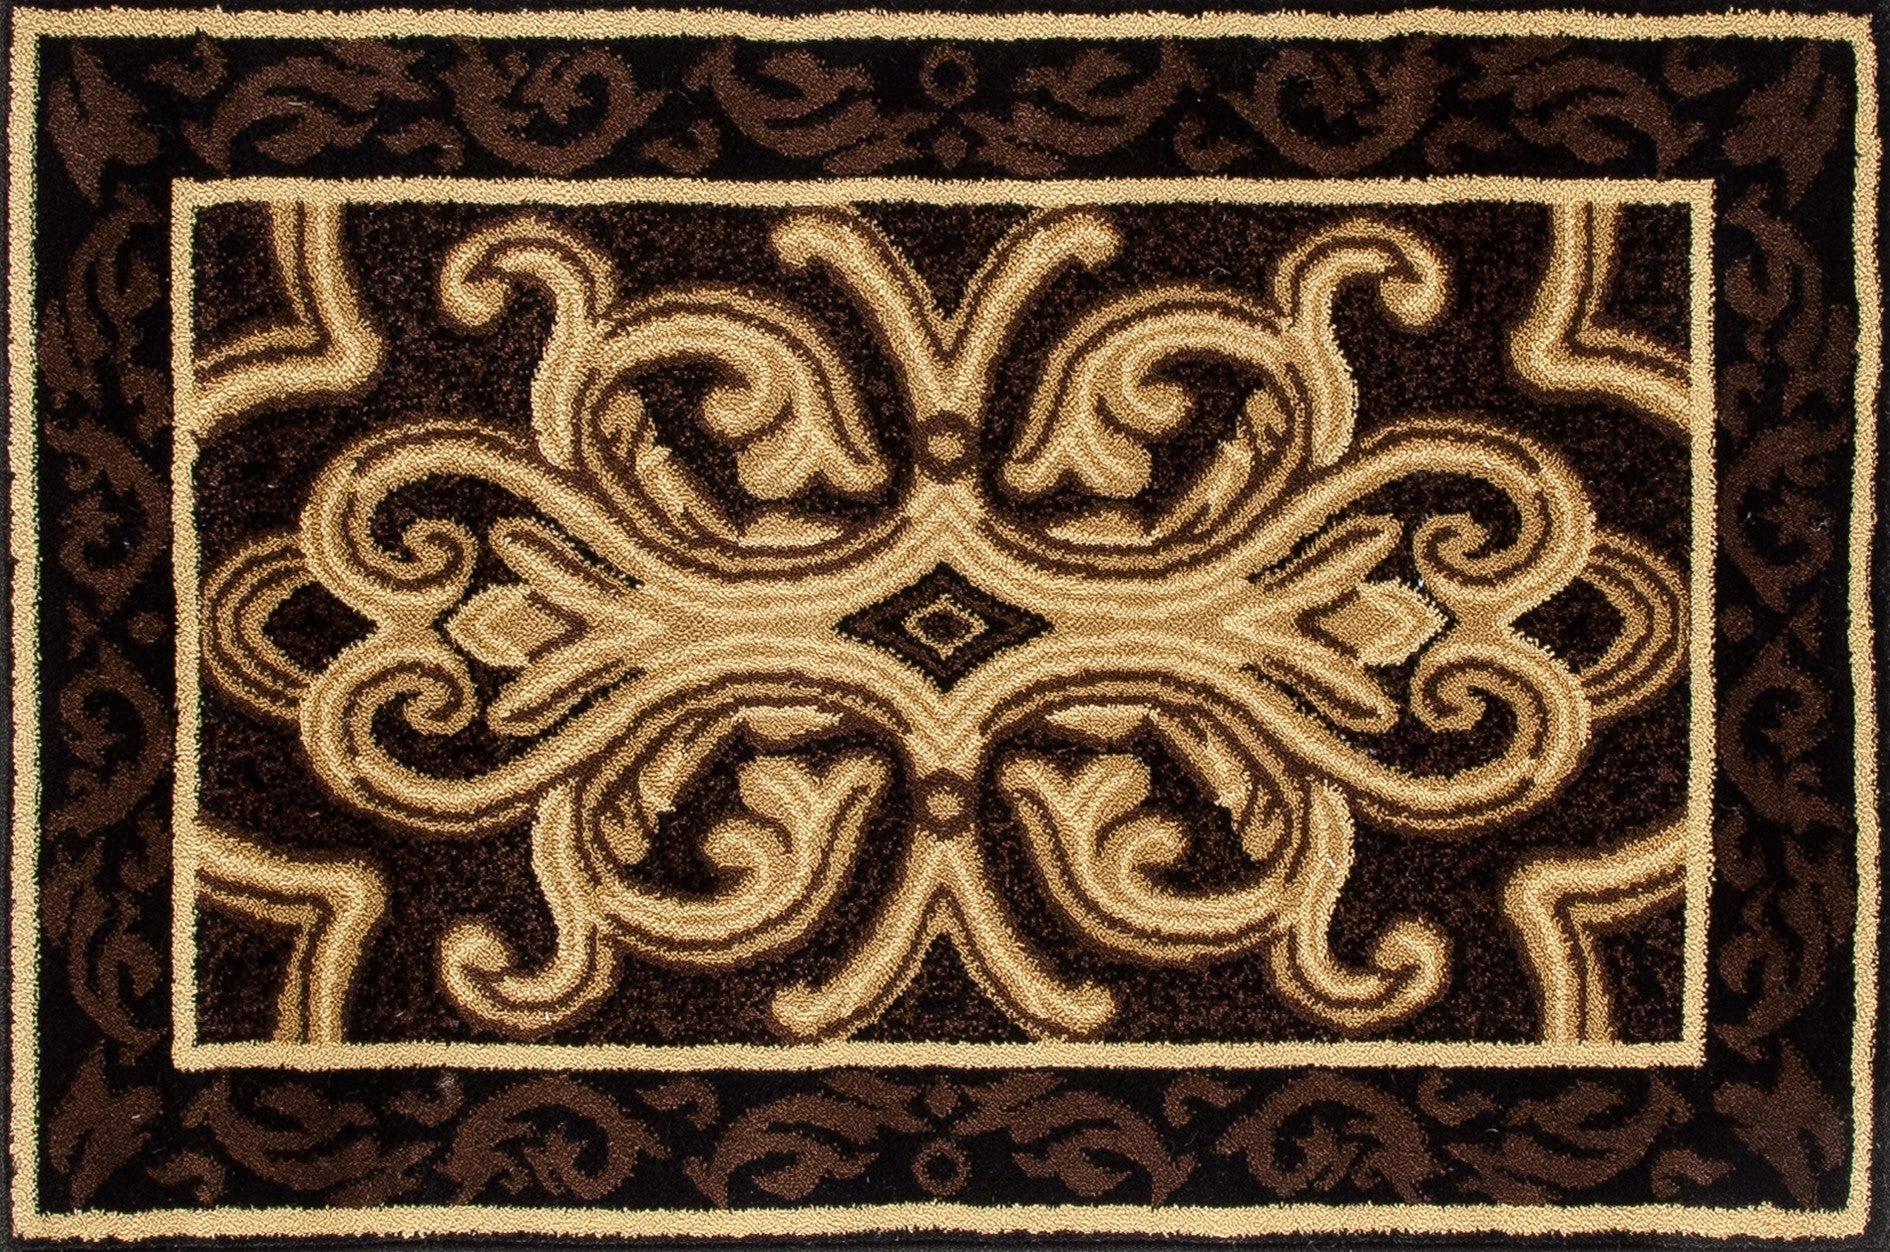 Art Carpet Hearth 2804 Black/Brown Area Rug main image